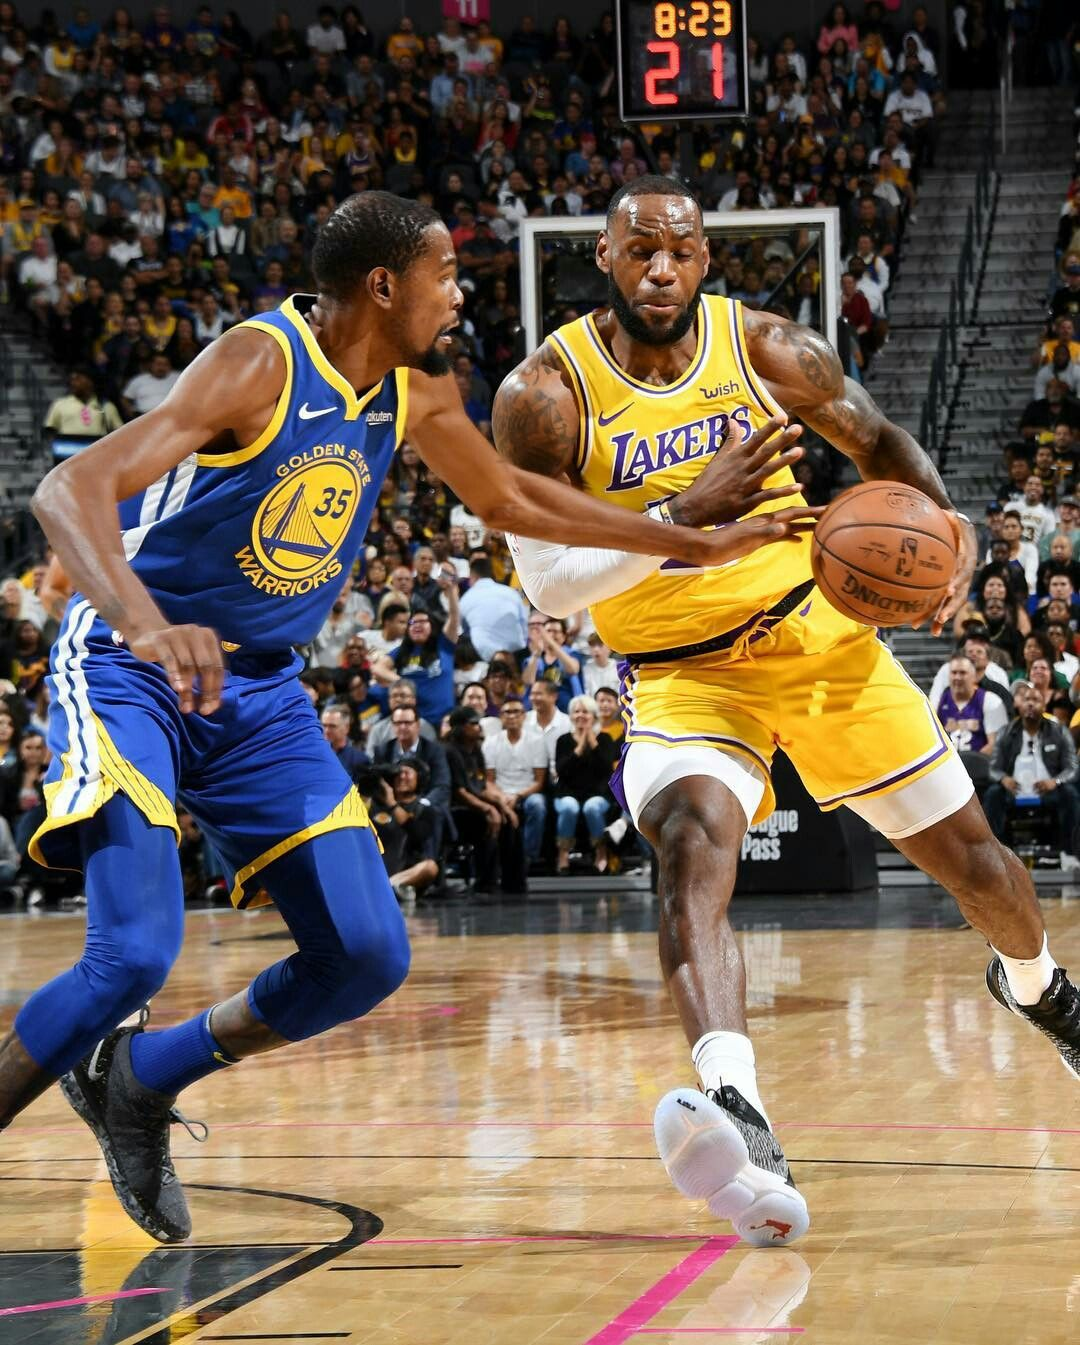 d6c5fd98f14 Kevin Durant - Golden State Warriors and Lebron James